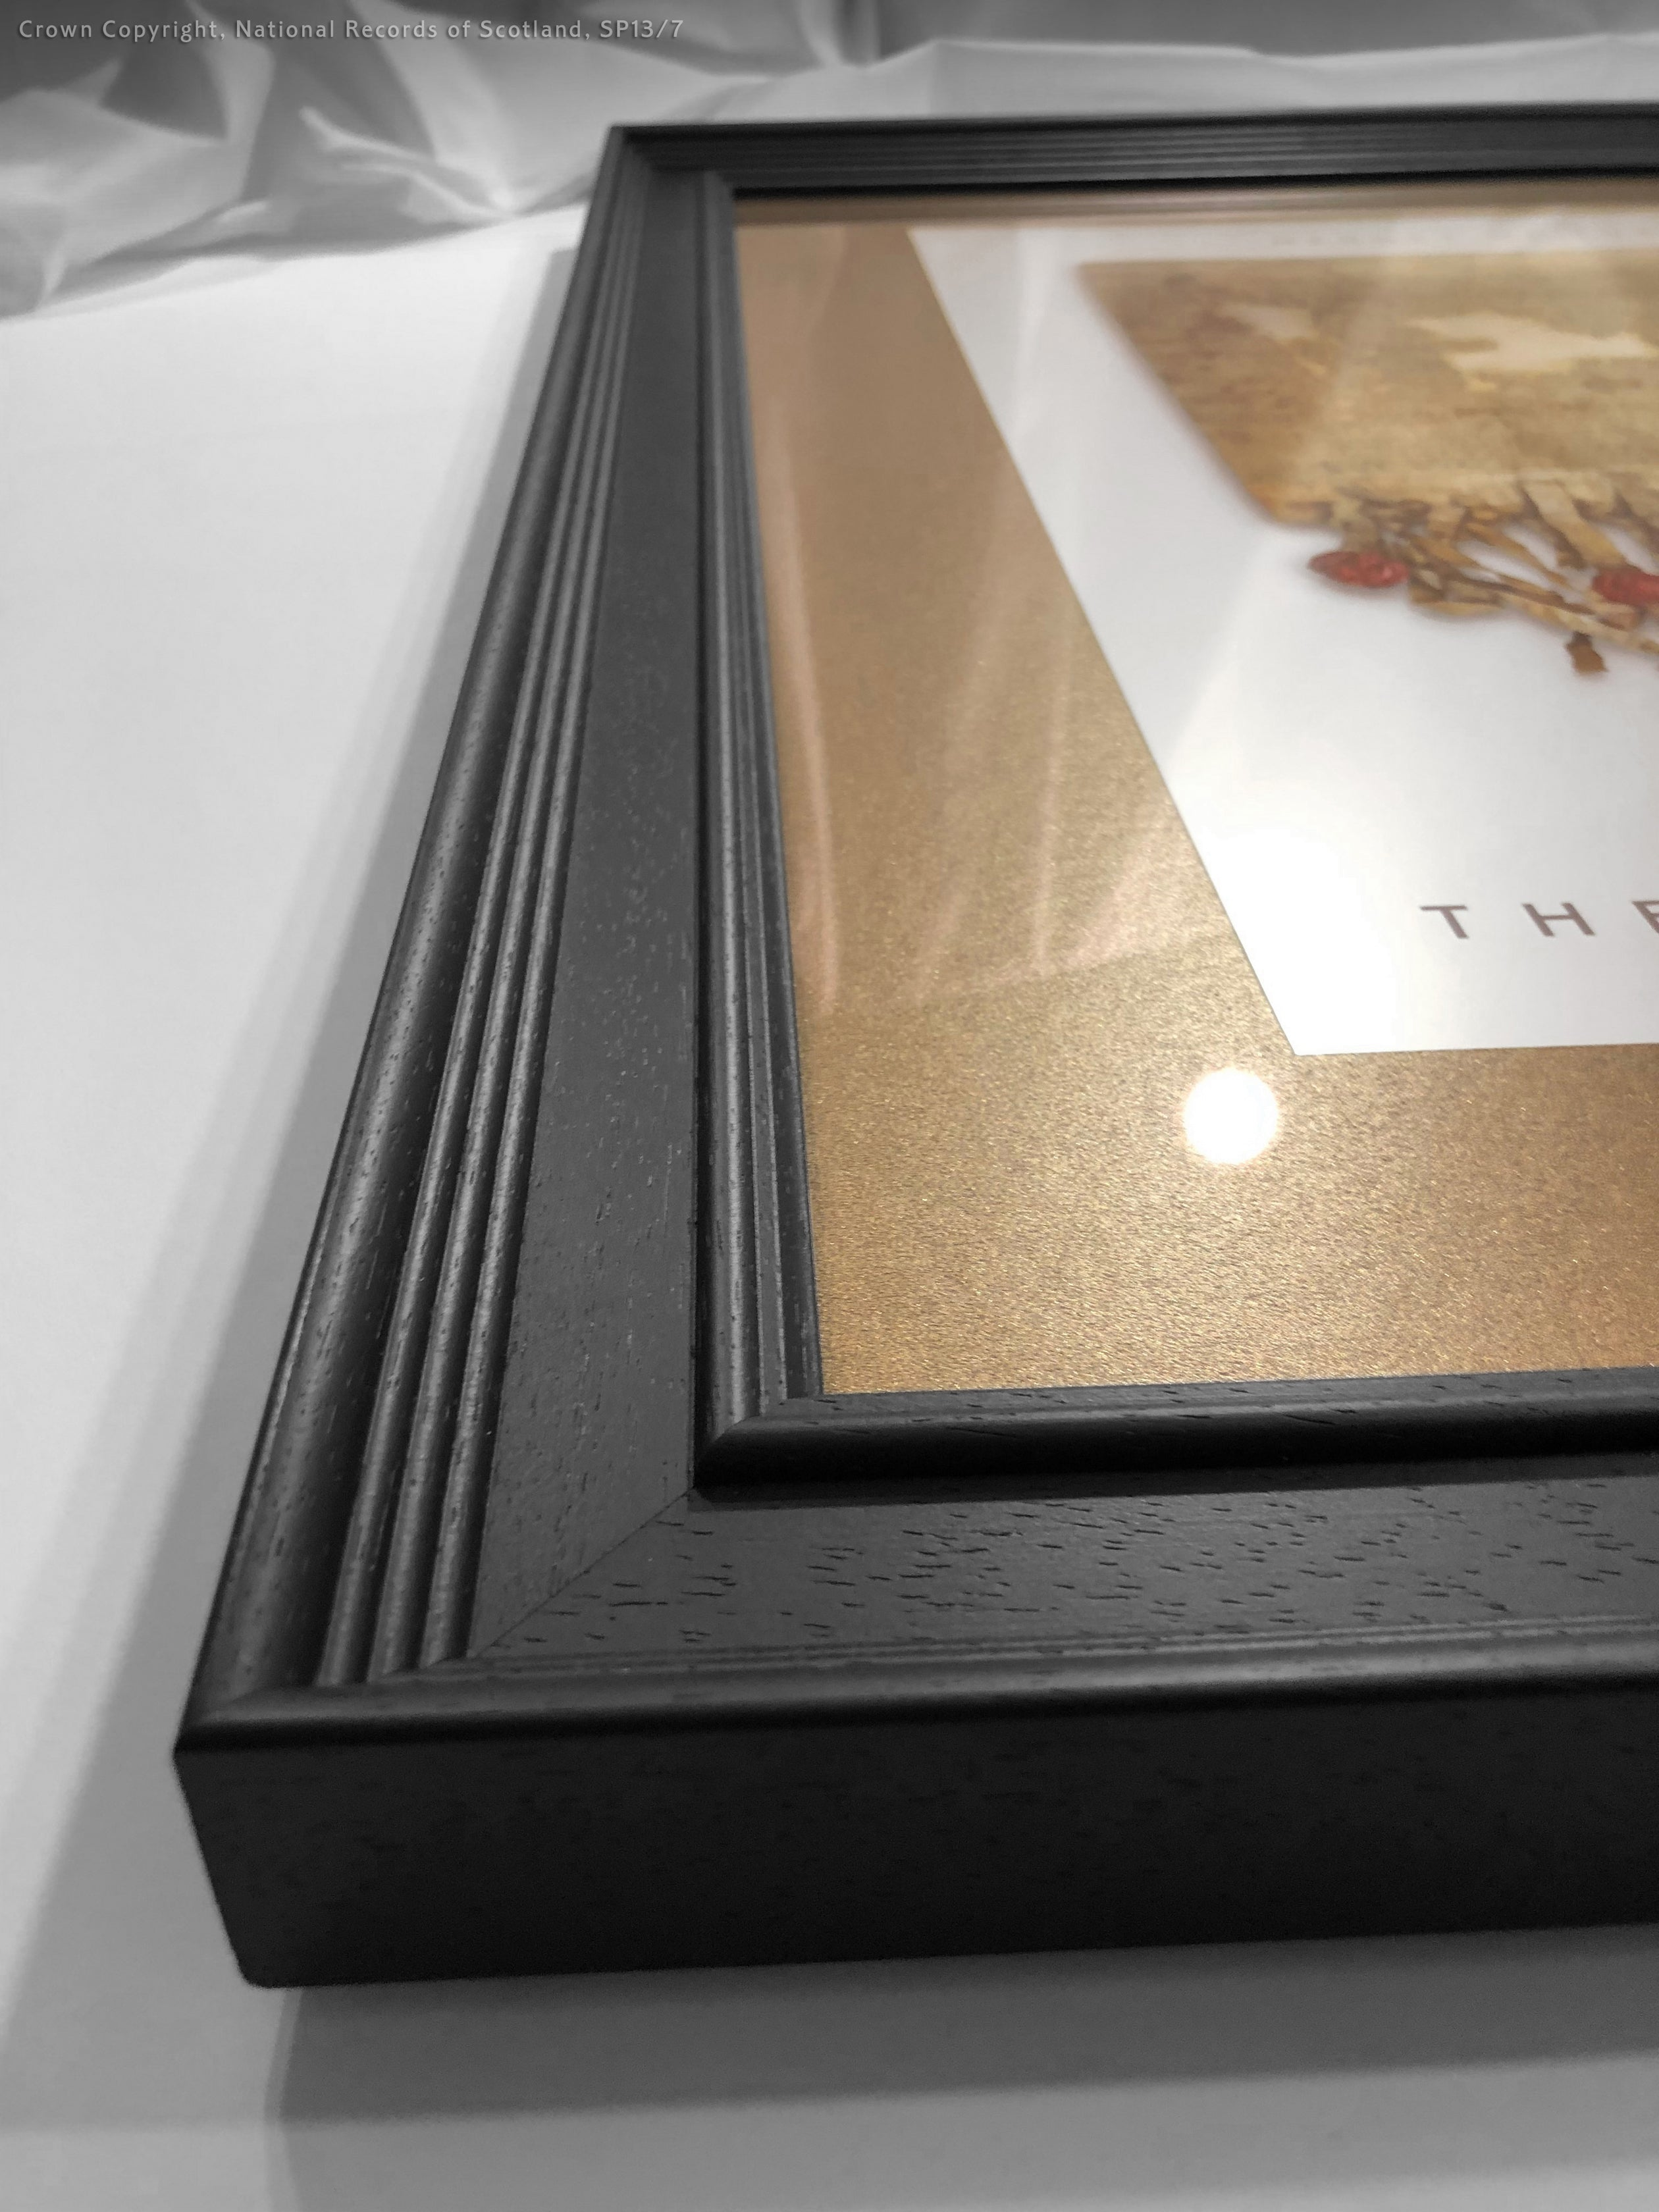 The Declaration of Arbroath Gold Metallic Print Editions - Pearl Framed with bronze mount